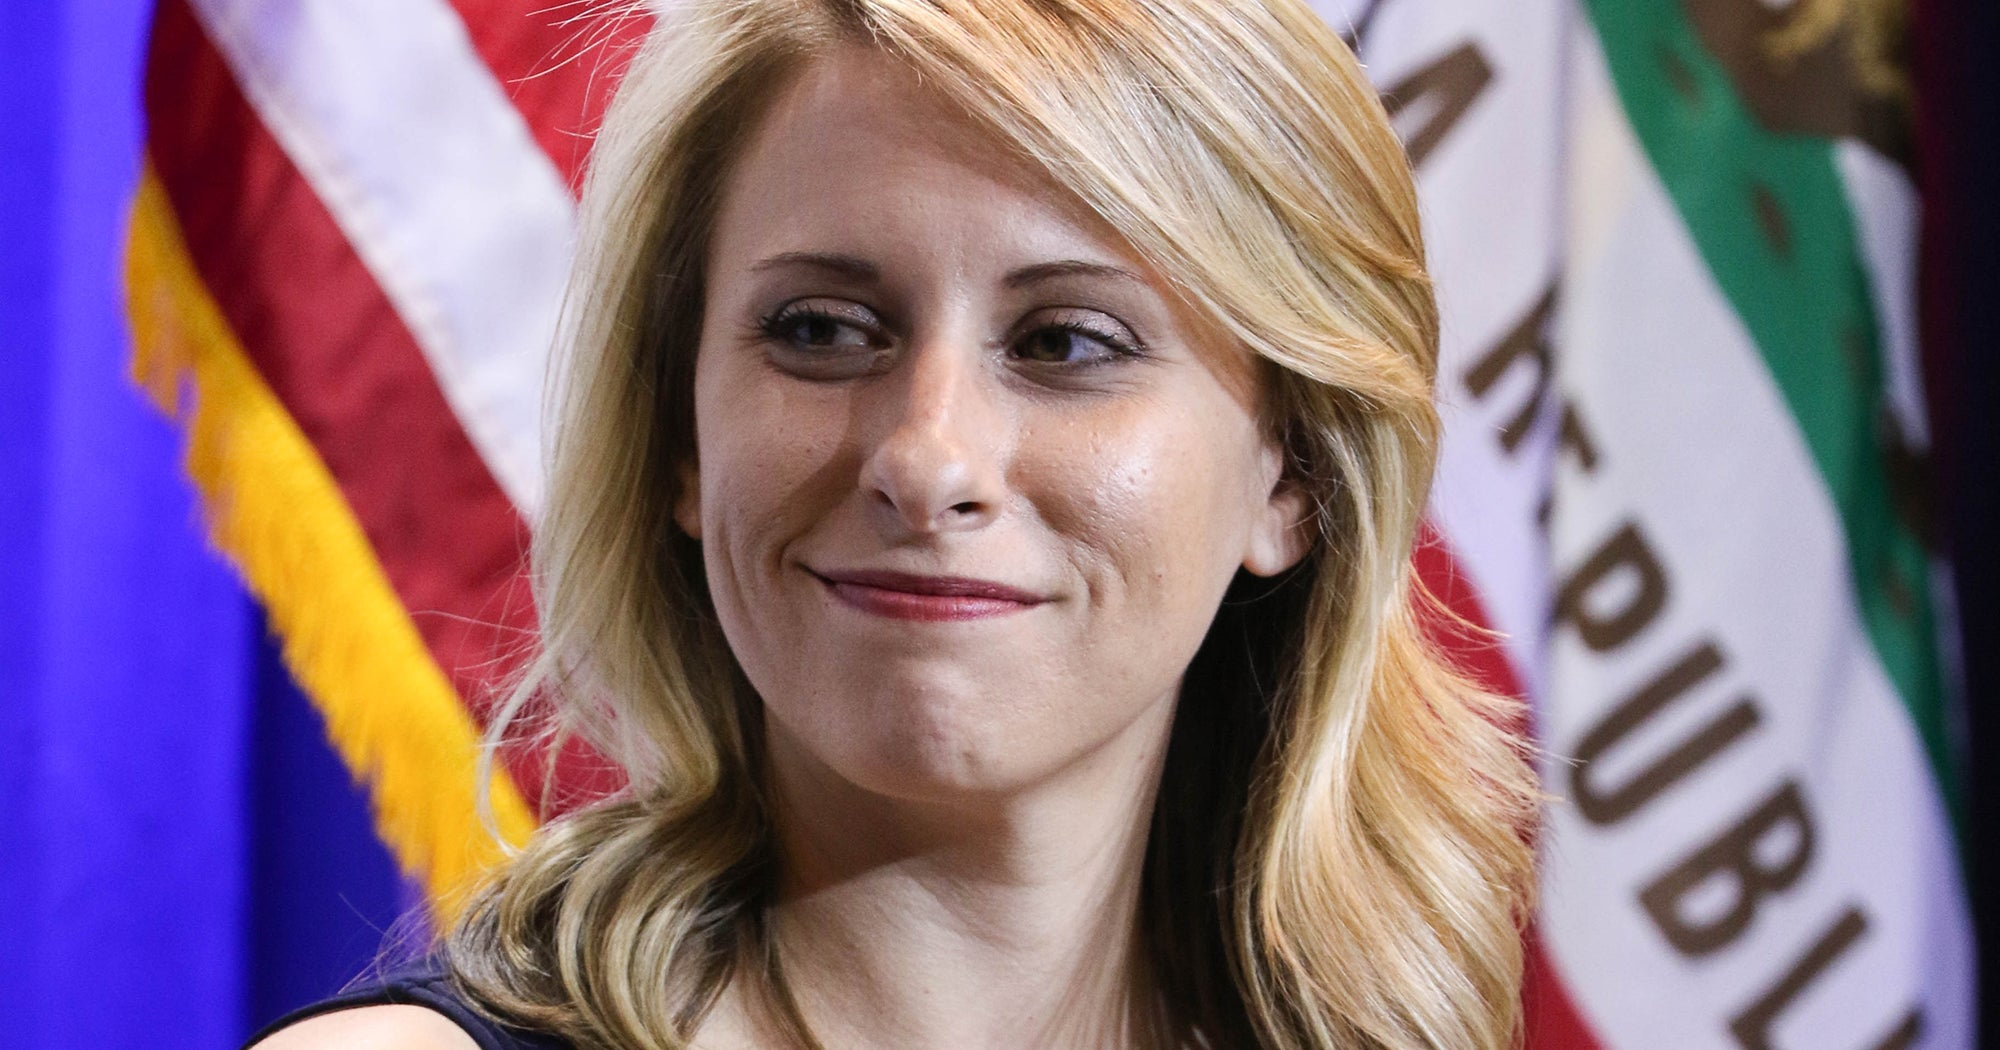 Rep. Katie Hill resigns from Congress amid allegations of